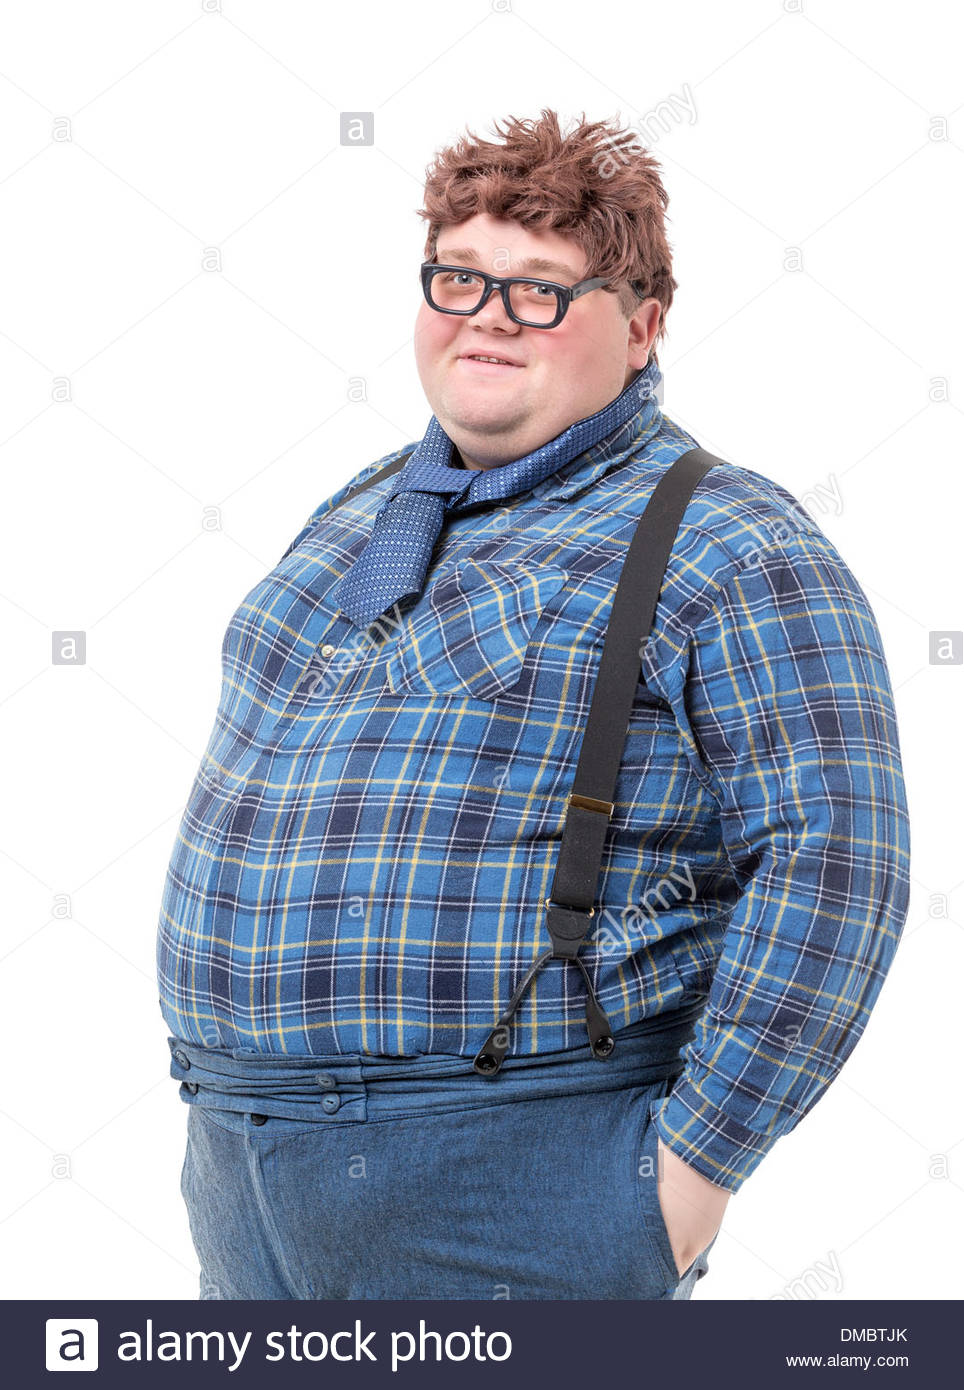 Overweight obese country yokel on white background Stock Photo 964x1390